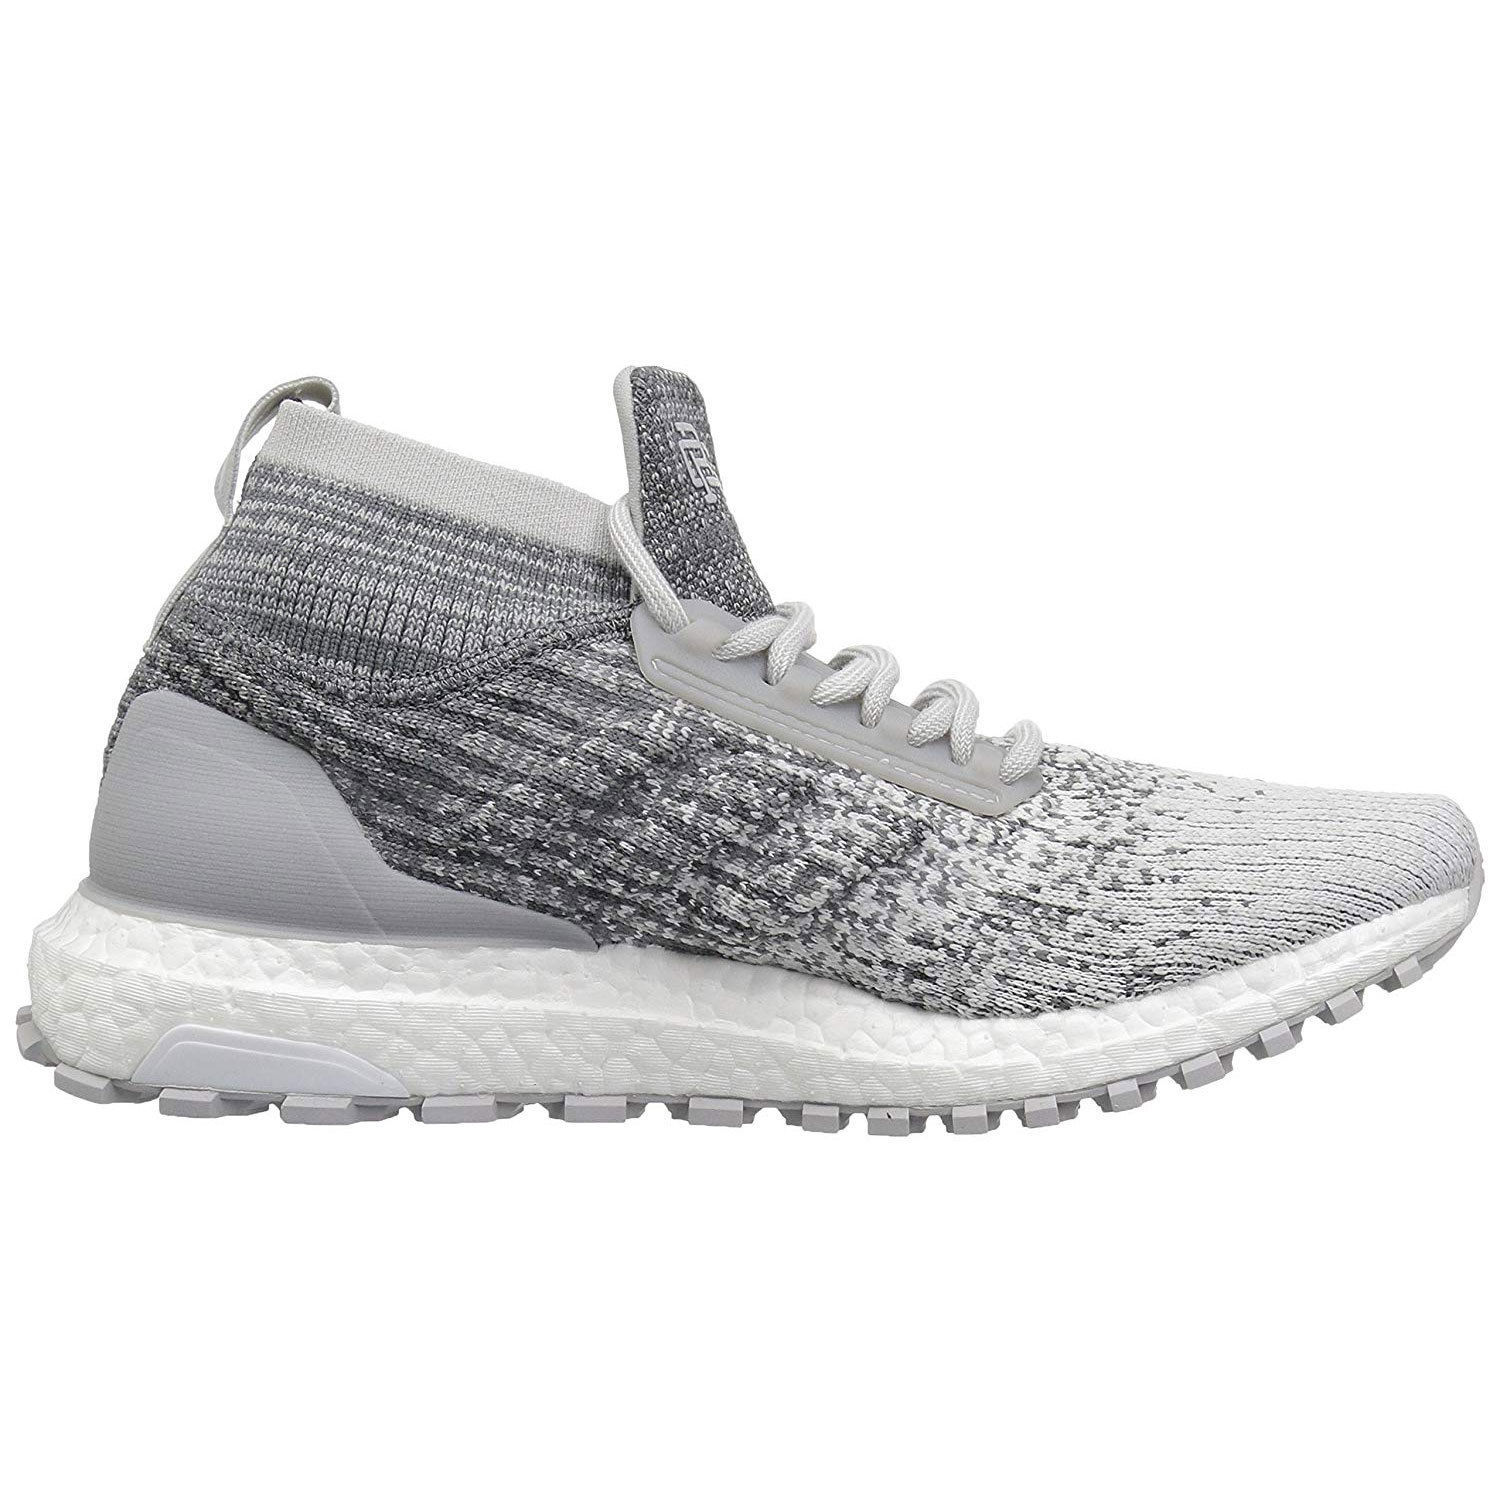 df337ef856f47 Adidas Men s Reigning Champ UltraBOOST All and 50 similar items. S l1600